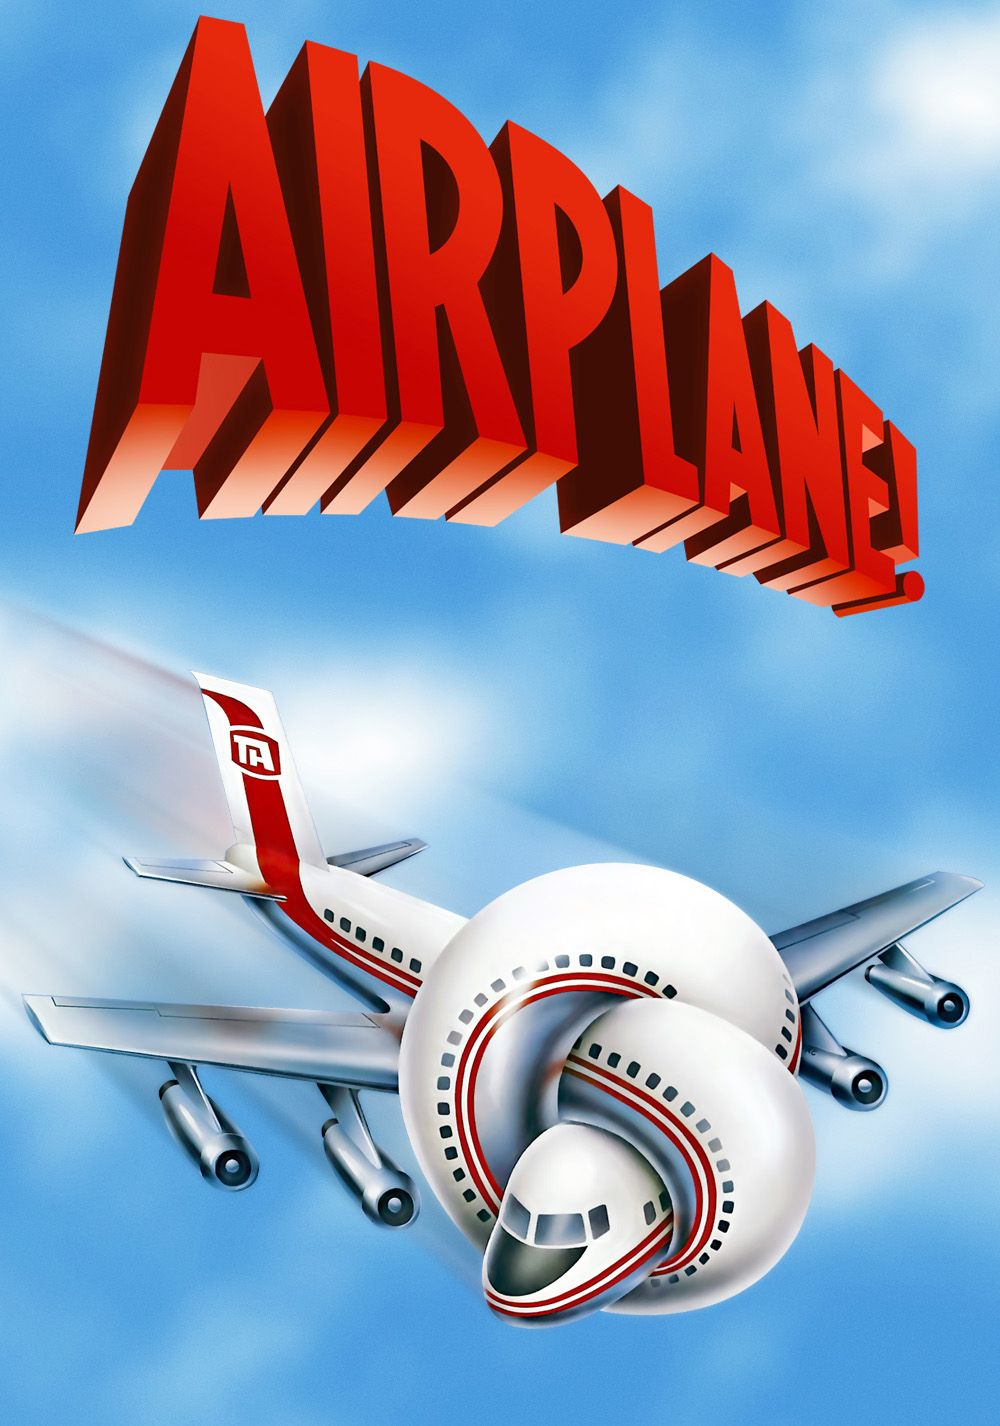 Airplane Funny Films Funny Scenes Top Comedy Movies